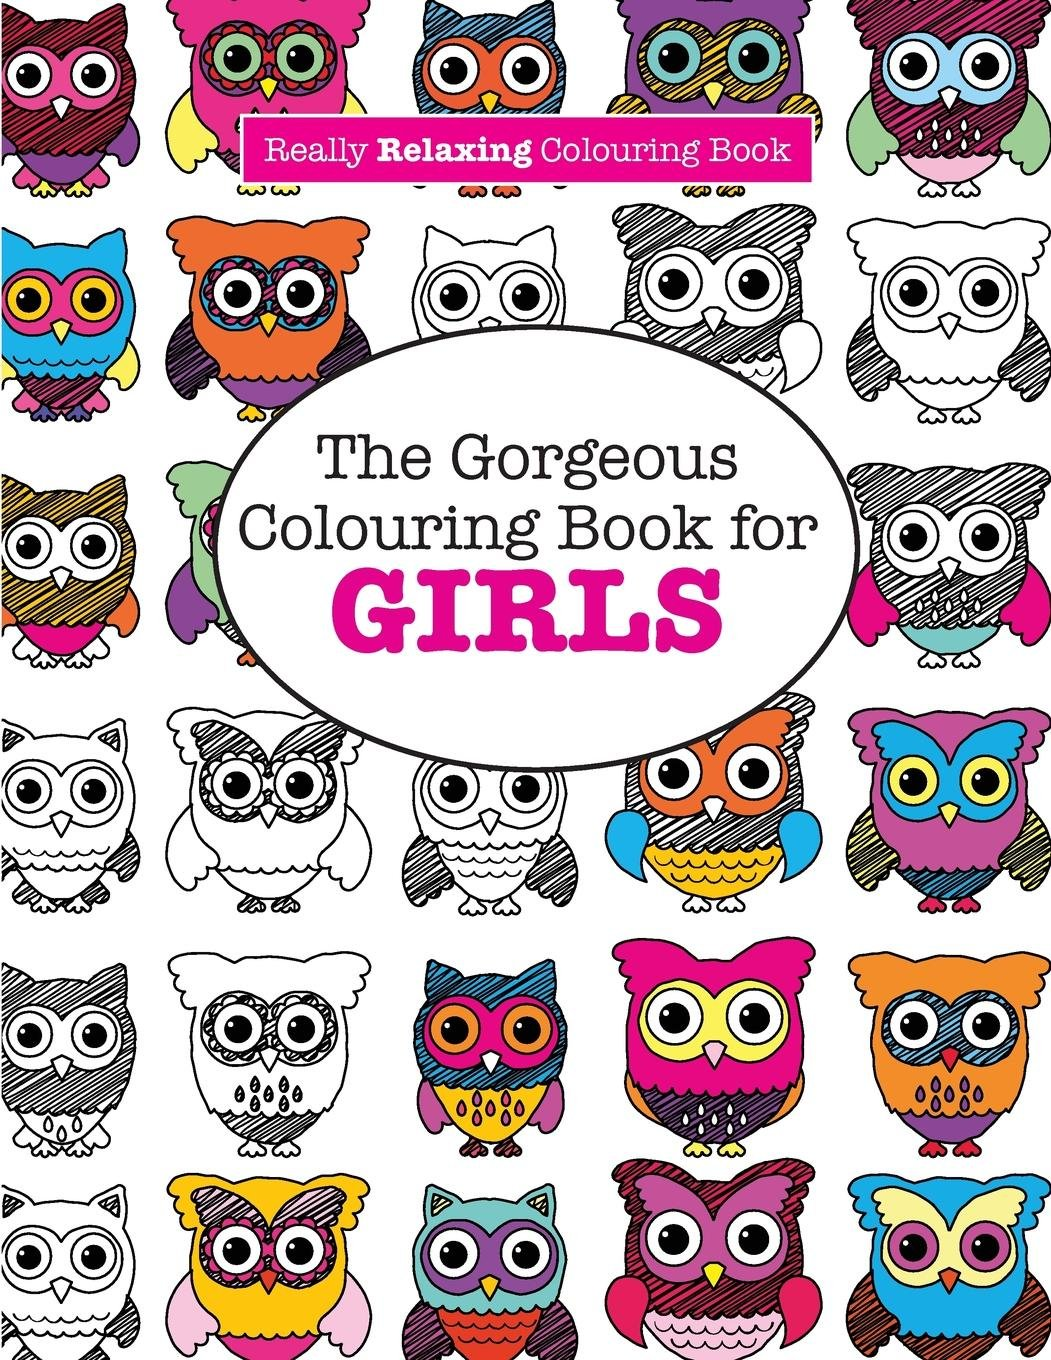 Amazon.com: The Gorgeous Colouring Book for GIRLS (A Really RELAXING ...